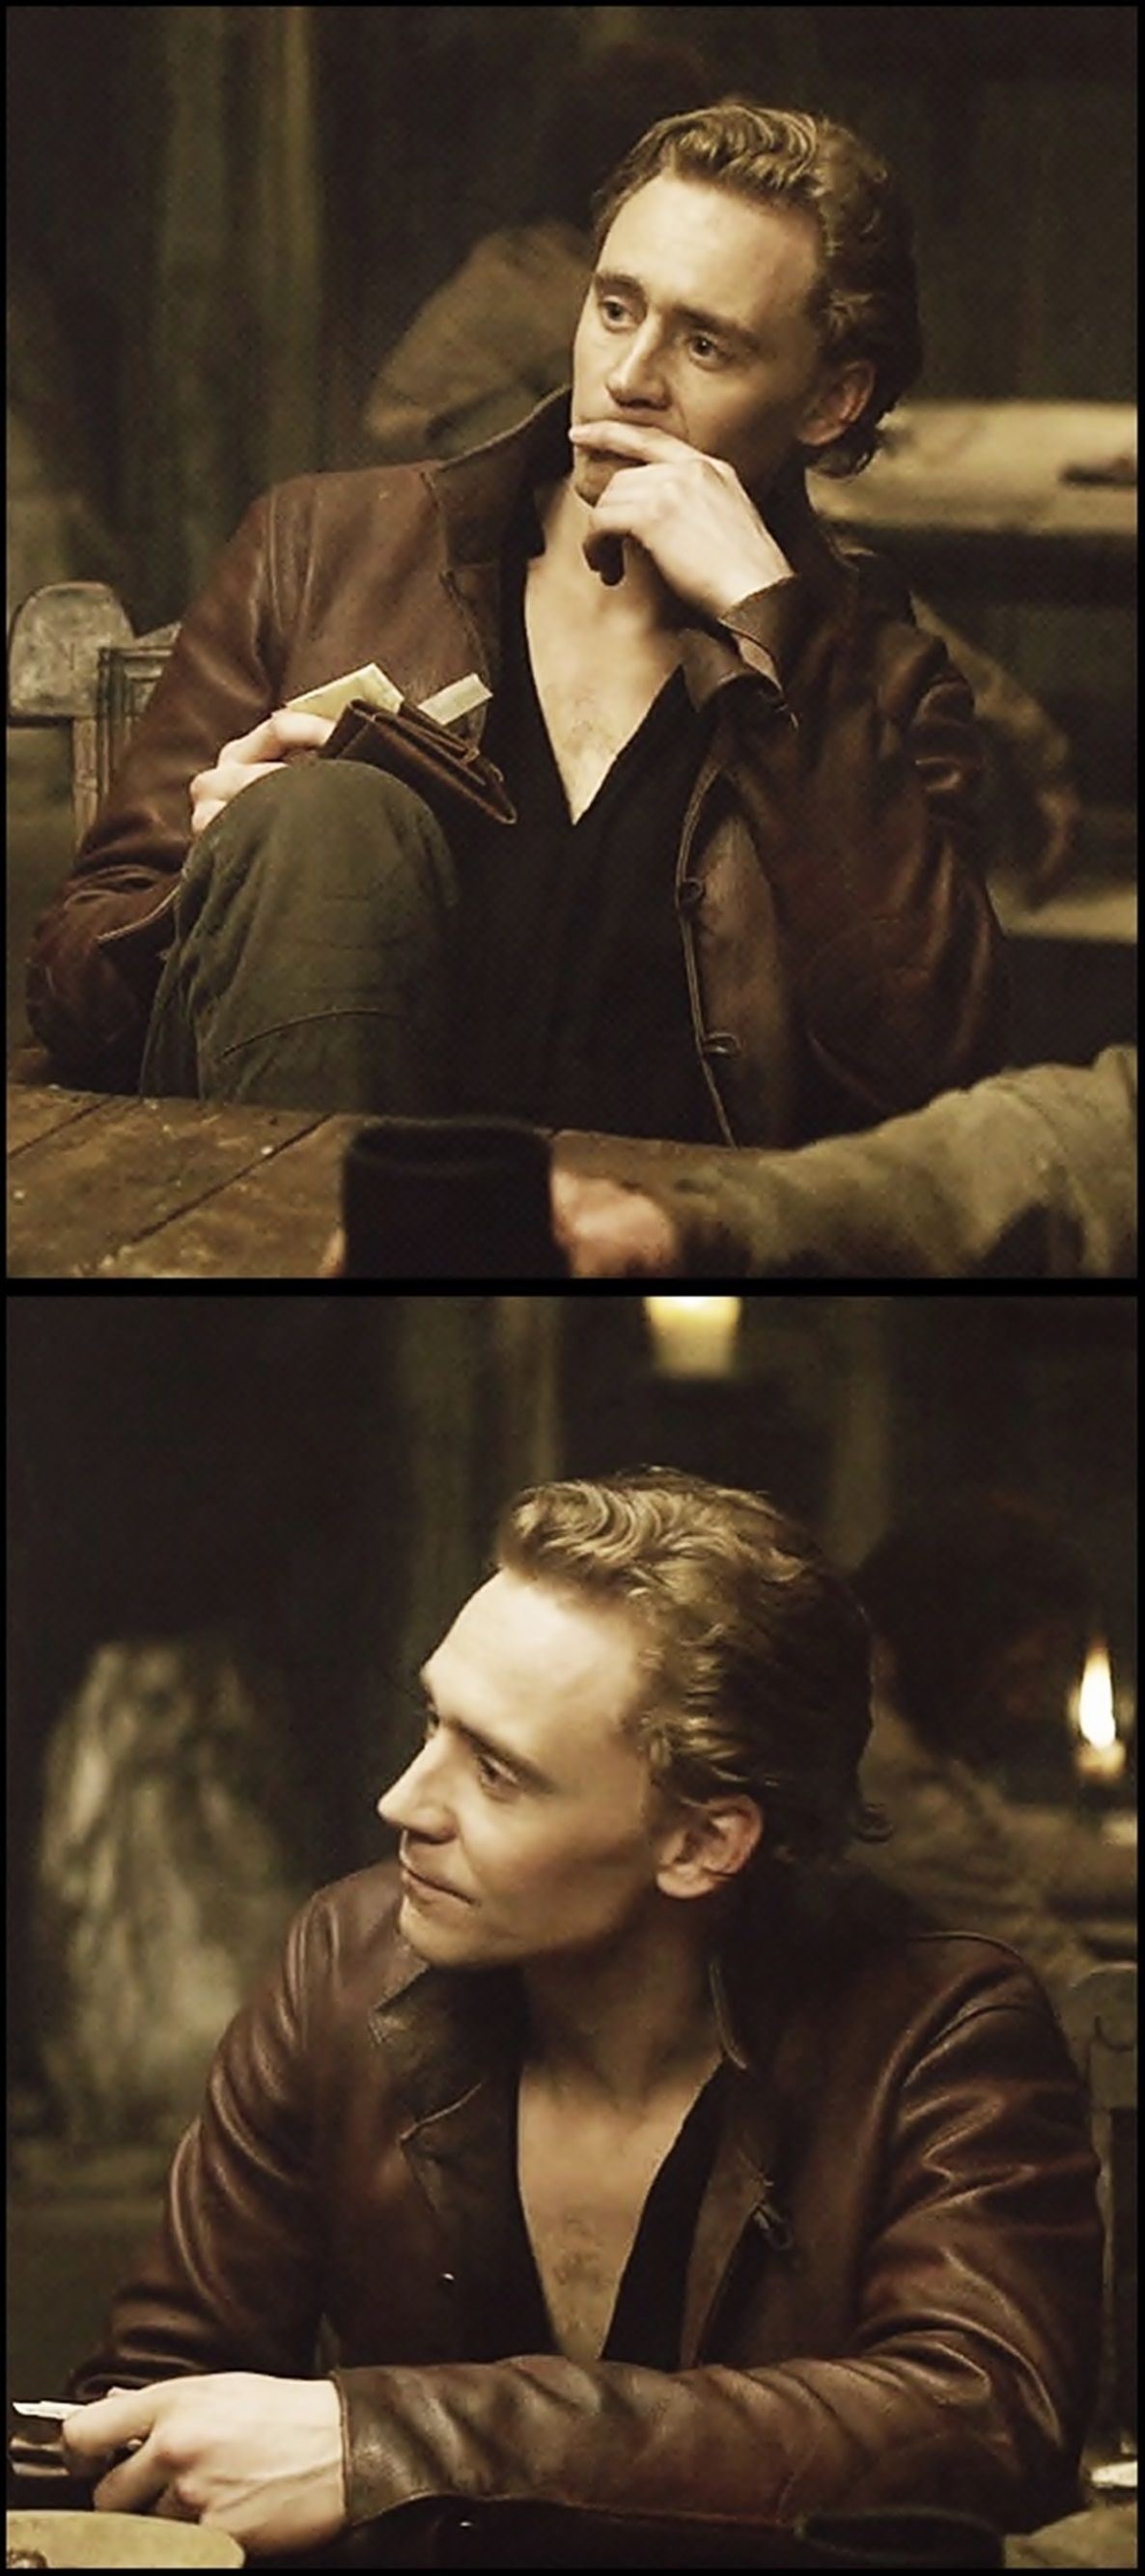 Twh The Hollow Crown With Images Tom Hiddleston